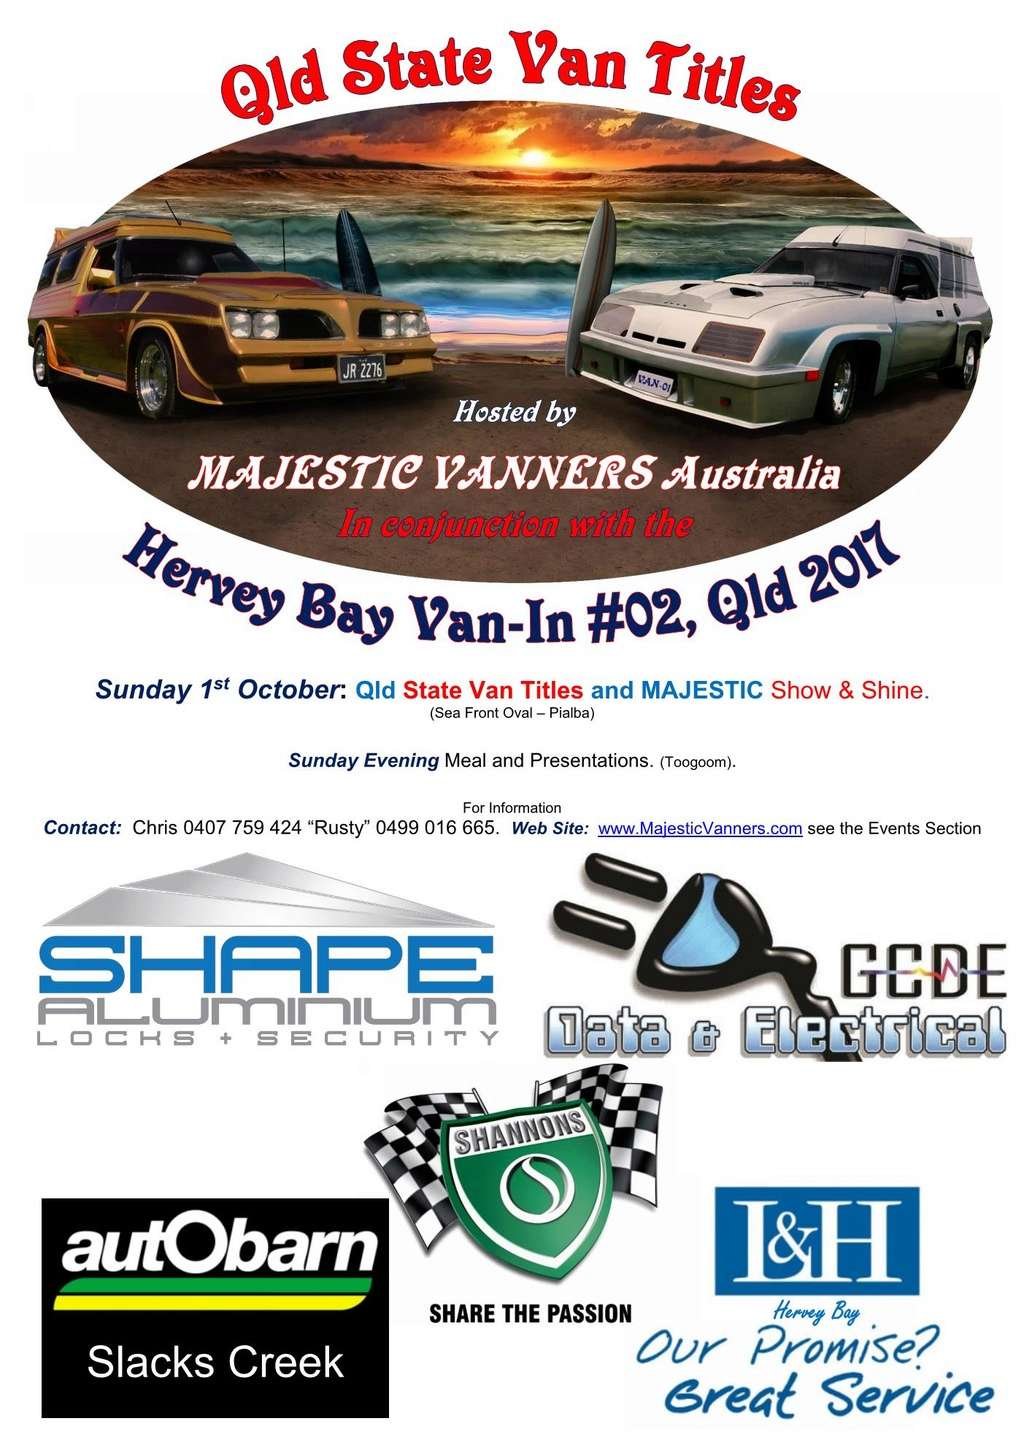 2017 Van-In #06 Albury/Wodonga; #02 Hervey Bay: 29th September to 2nd October. 2017_d12